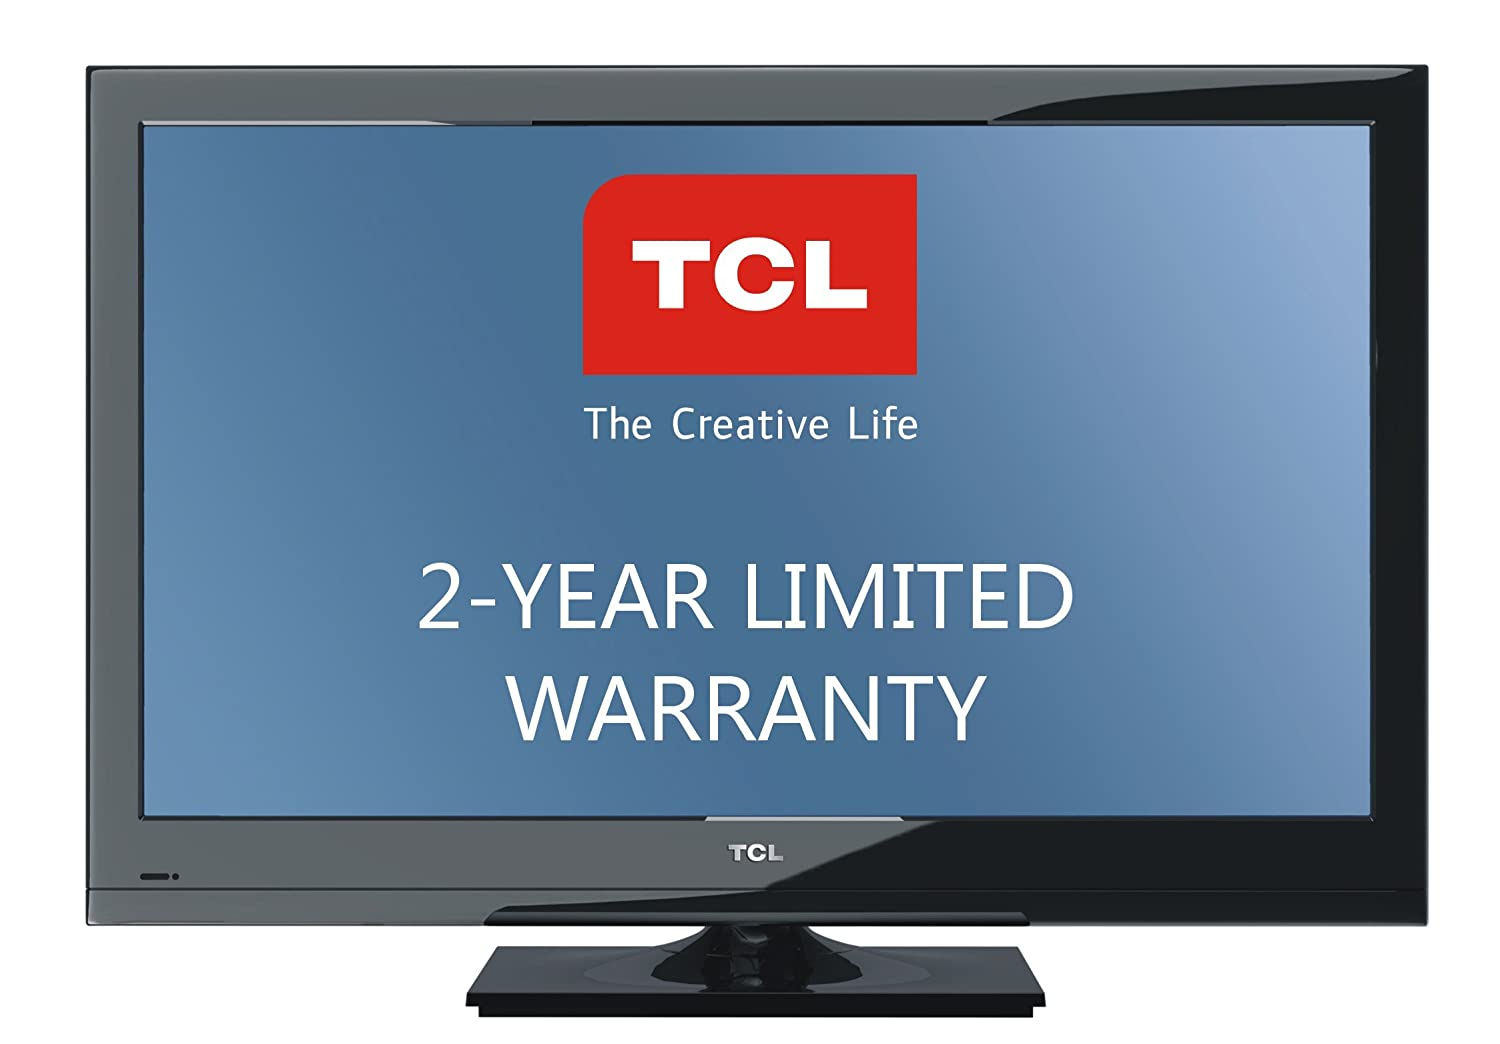 Amazon.com: TCL L40FHDF11TA 40-Inch 1080p 60 Hz LCD HDTV with 2-Year ...